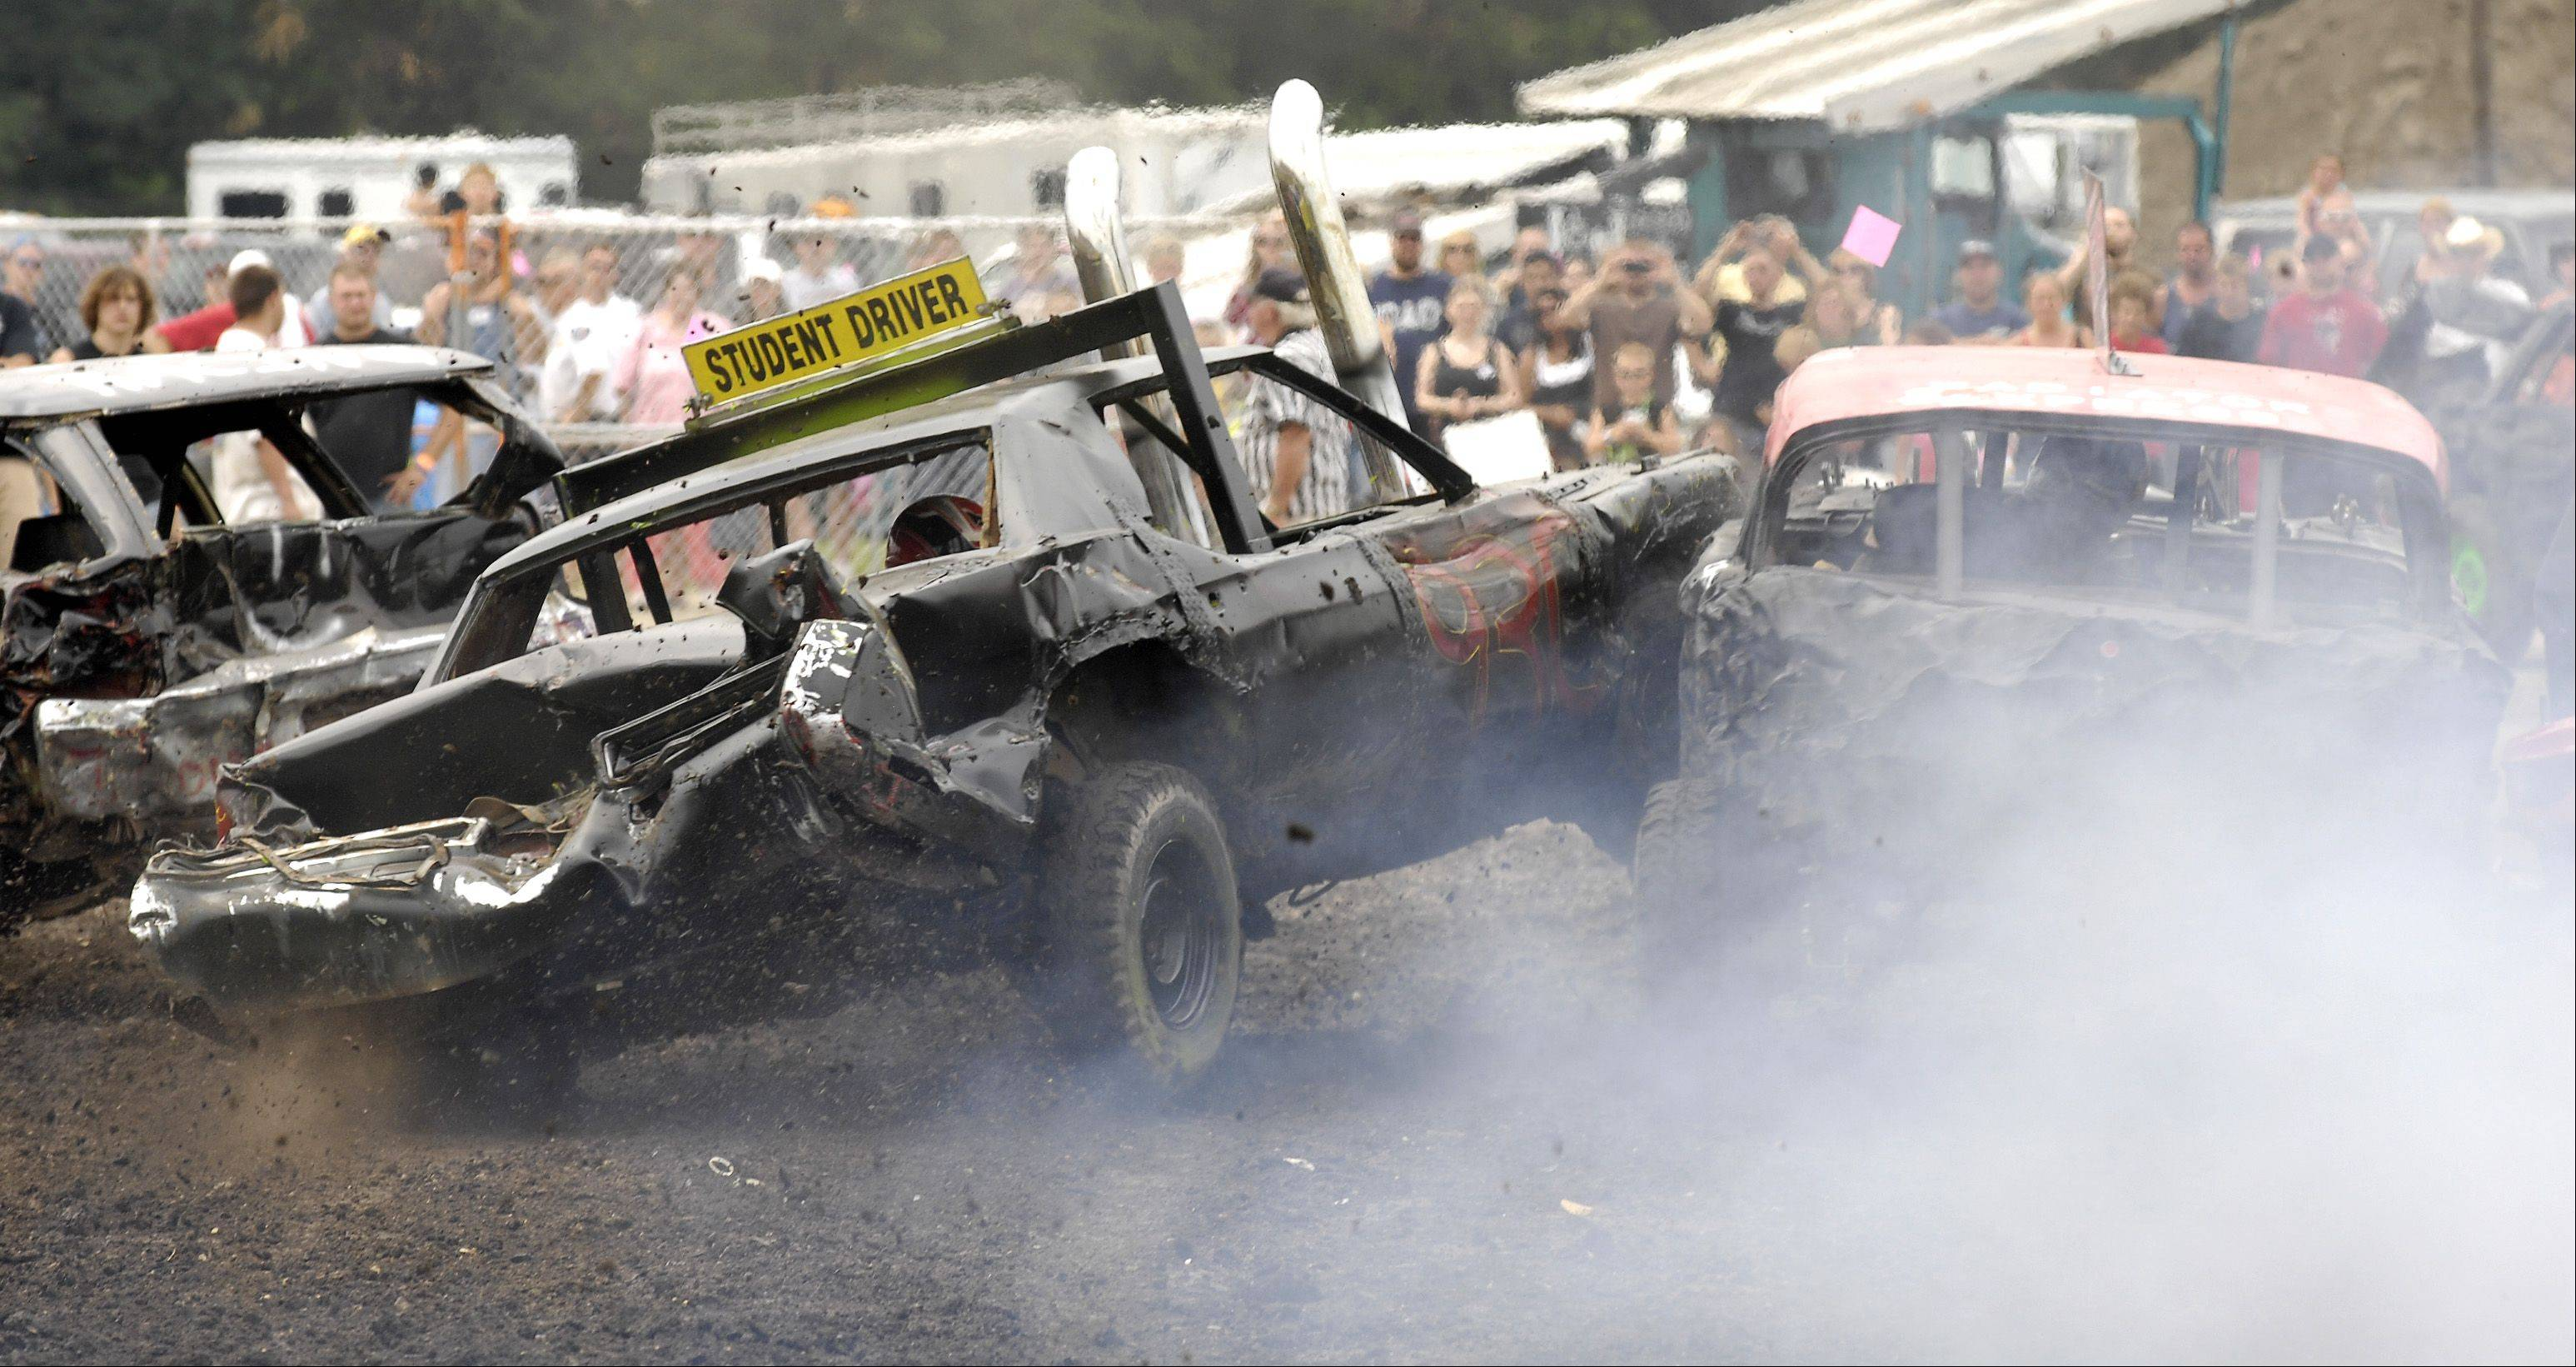 Competitors hit each other hard during the demolition derby Sunday at the DuPage County Fair in Wheaton.